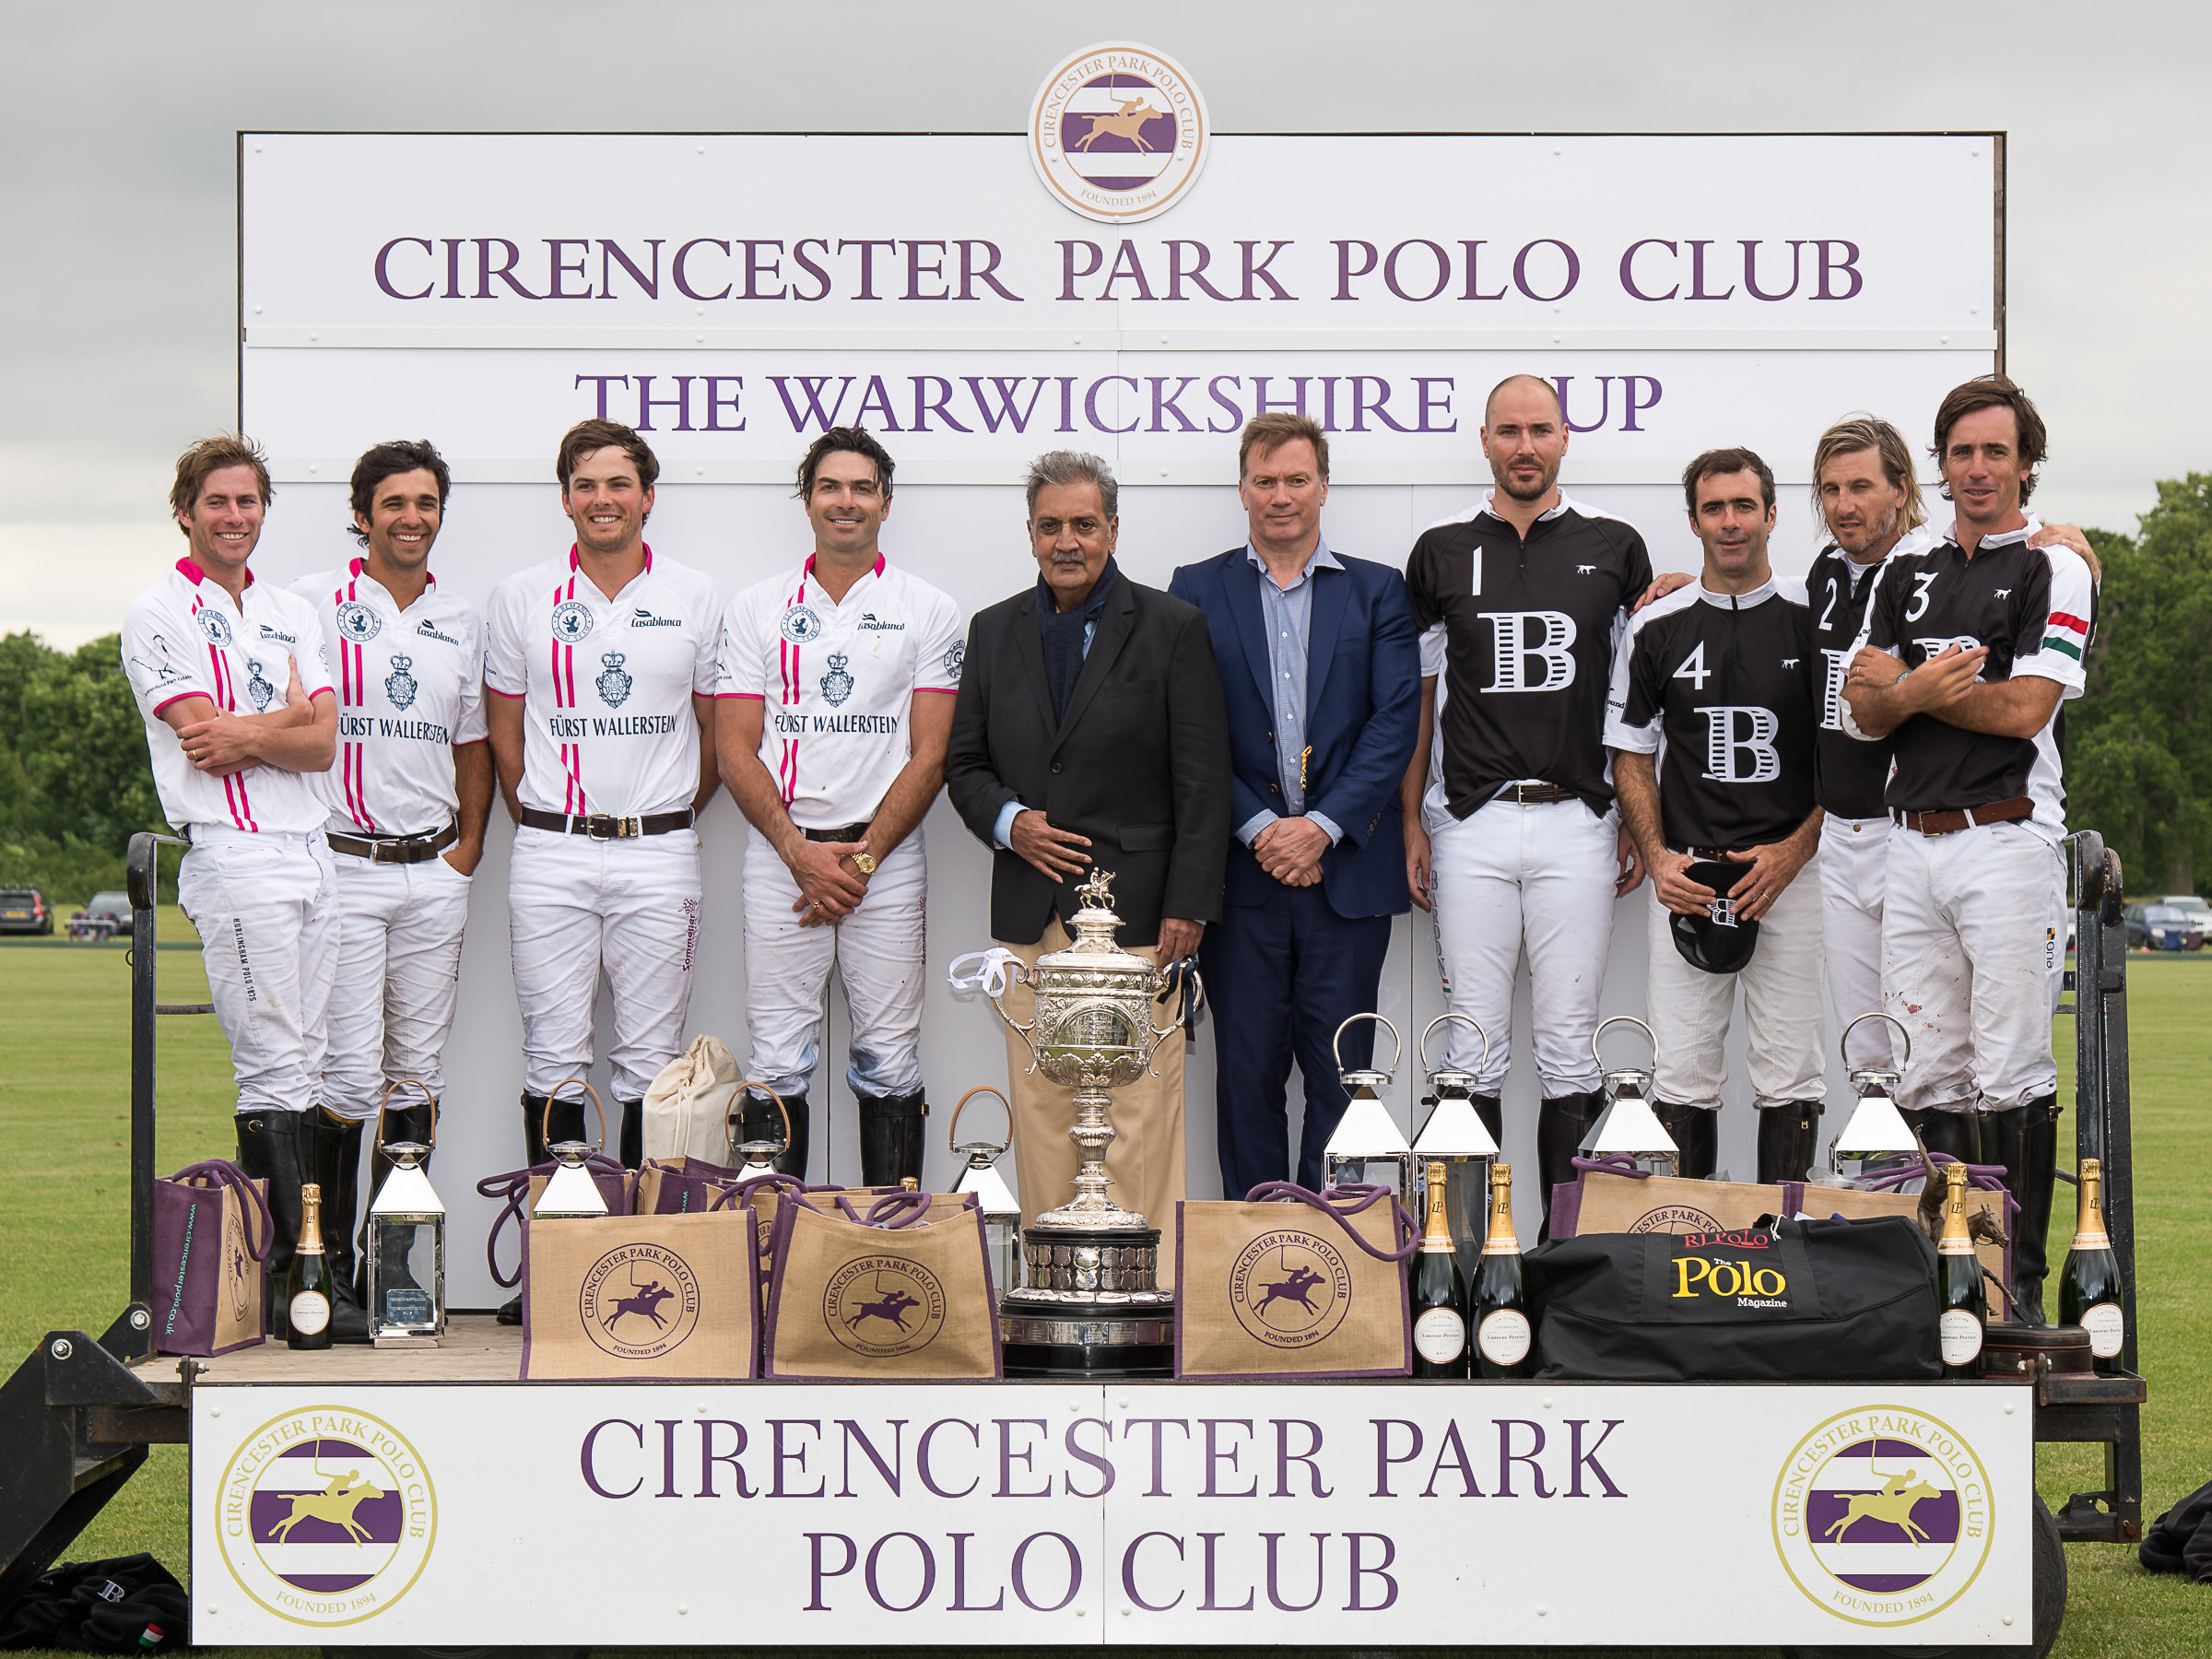 The Cotswold International Polo Day - Sunday 24th June